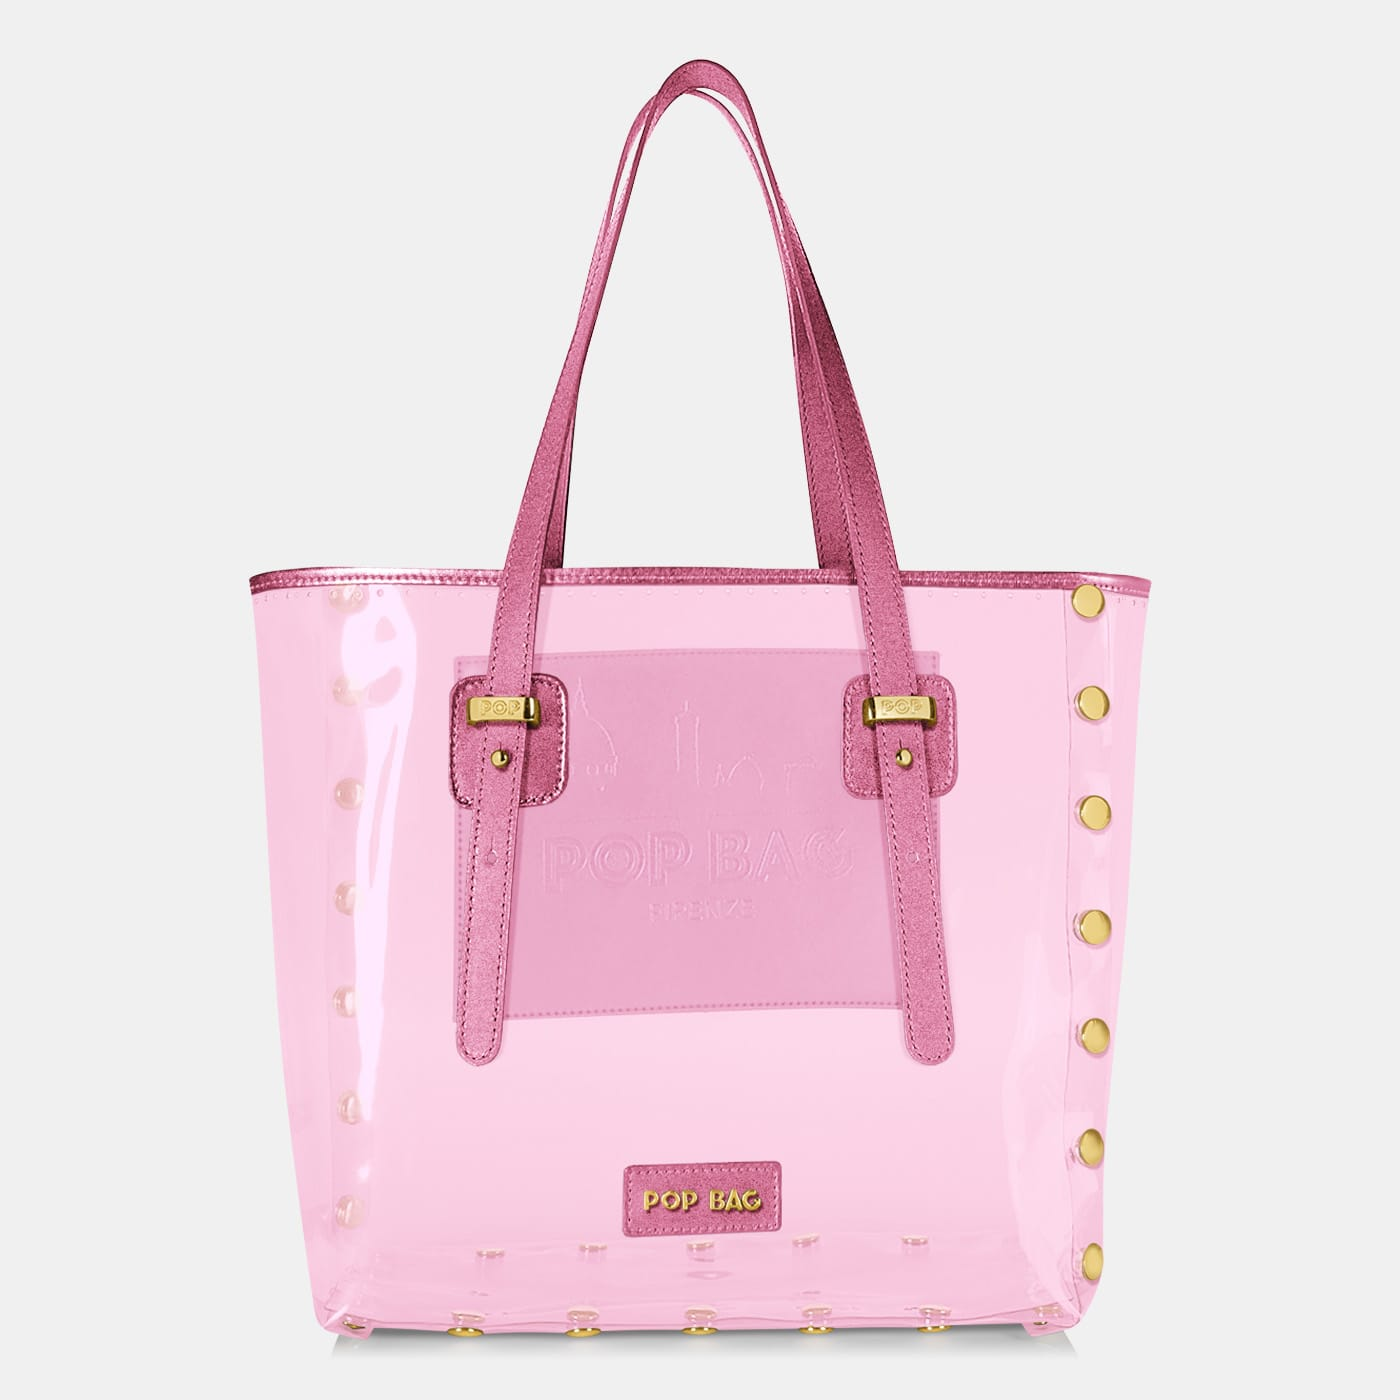 Pop Crystal Bag - Pink - Large